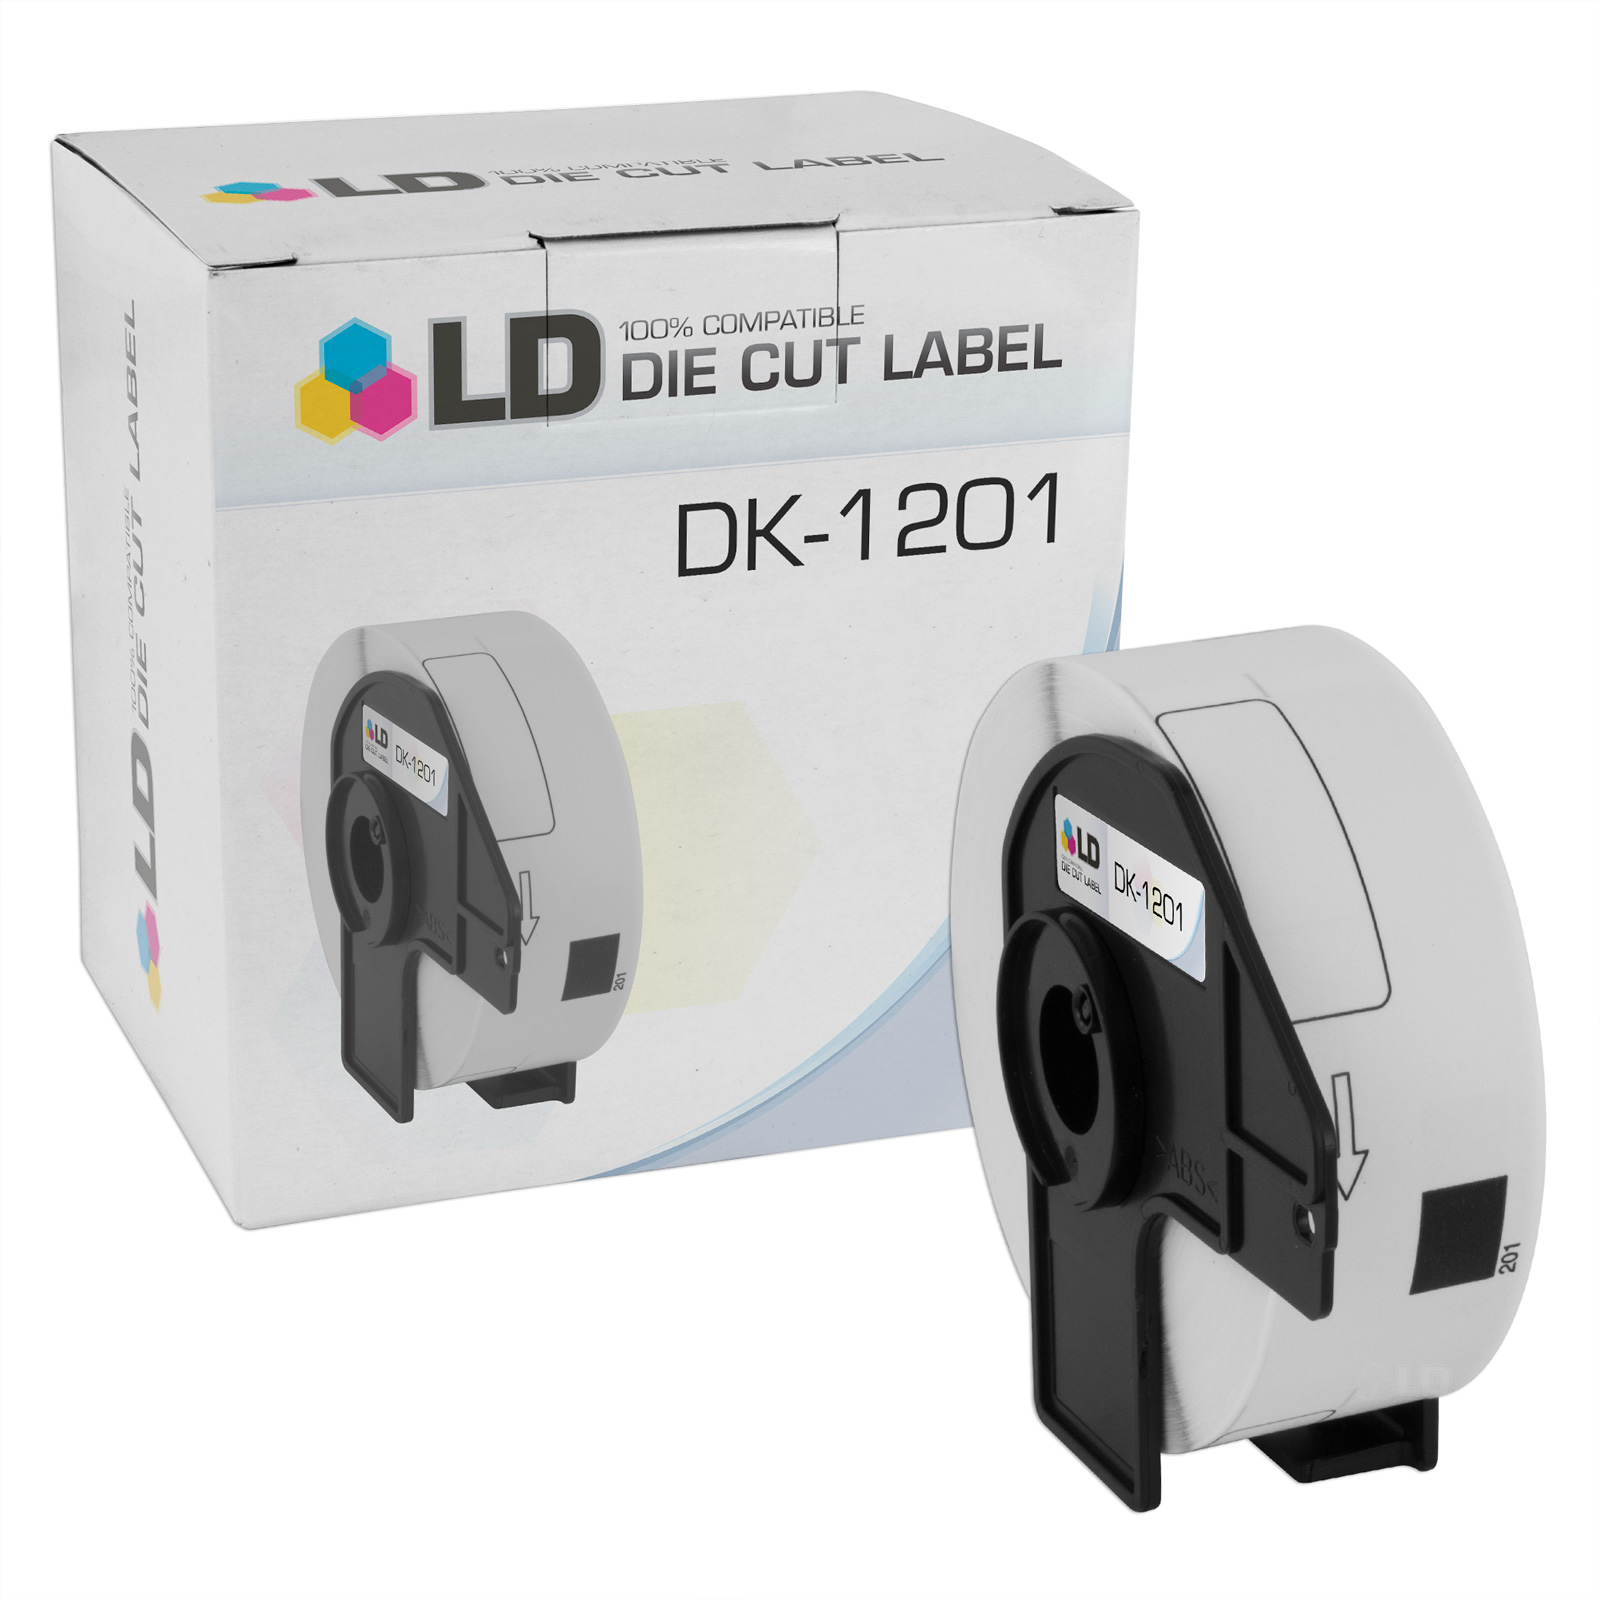 29 mm x 90.3mm 1.1 in x 3.5 in 2PK Compatible DK-1201 Address Labels